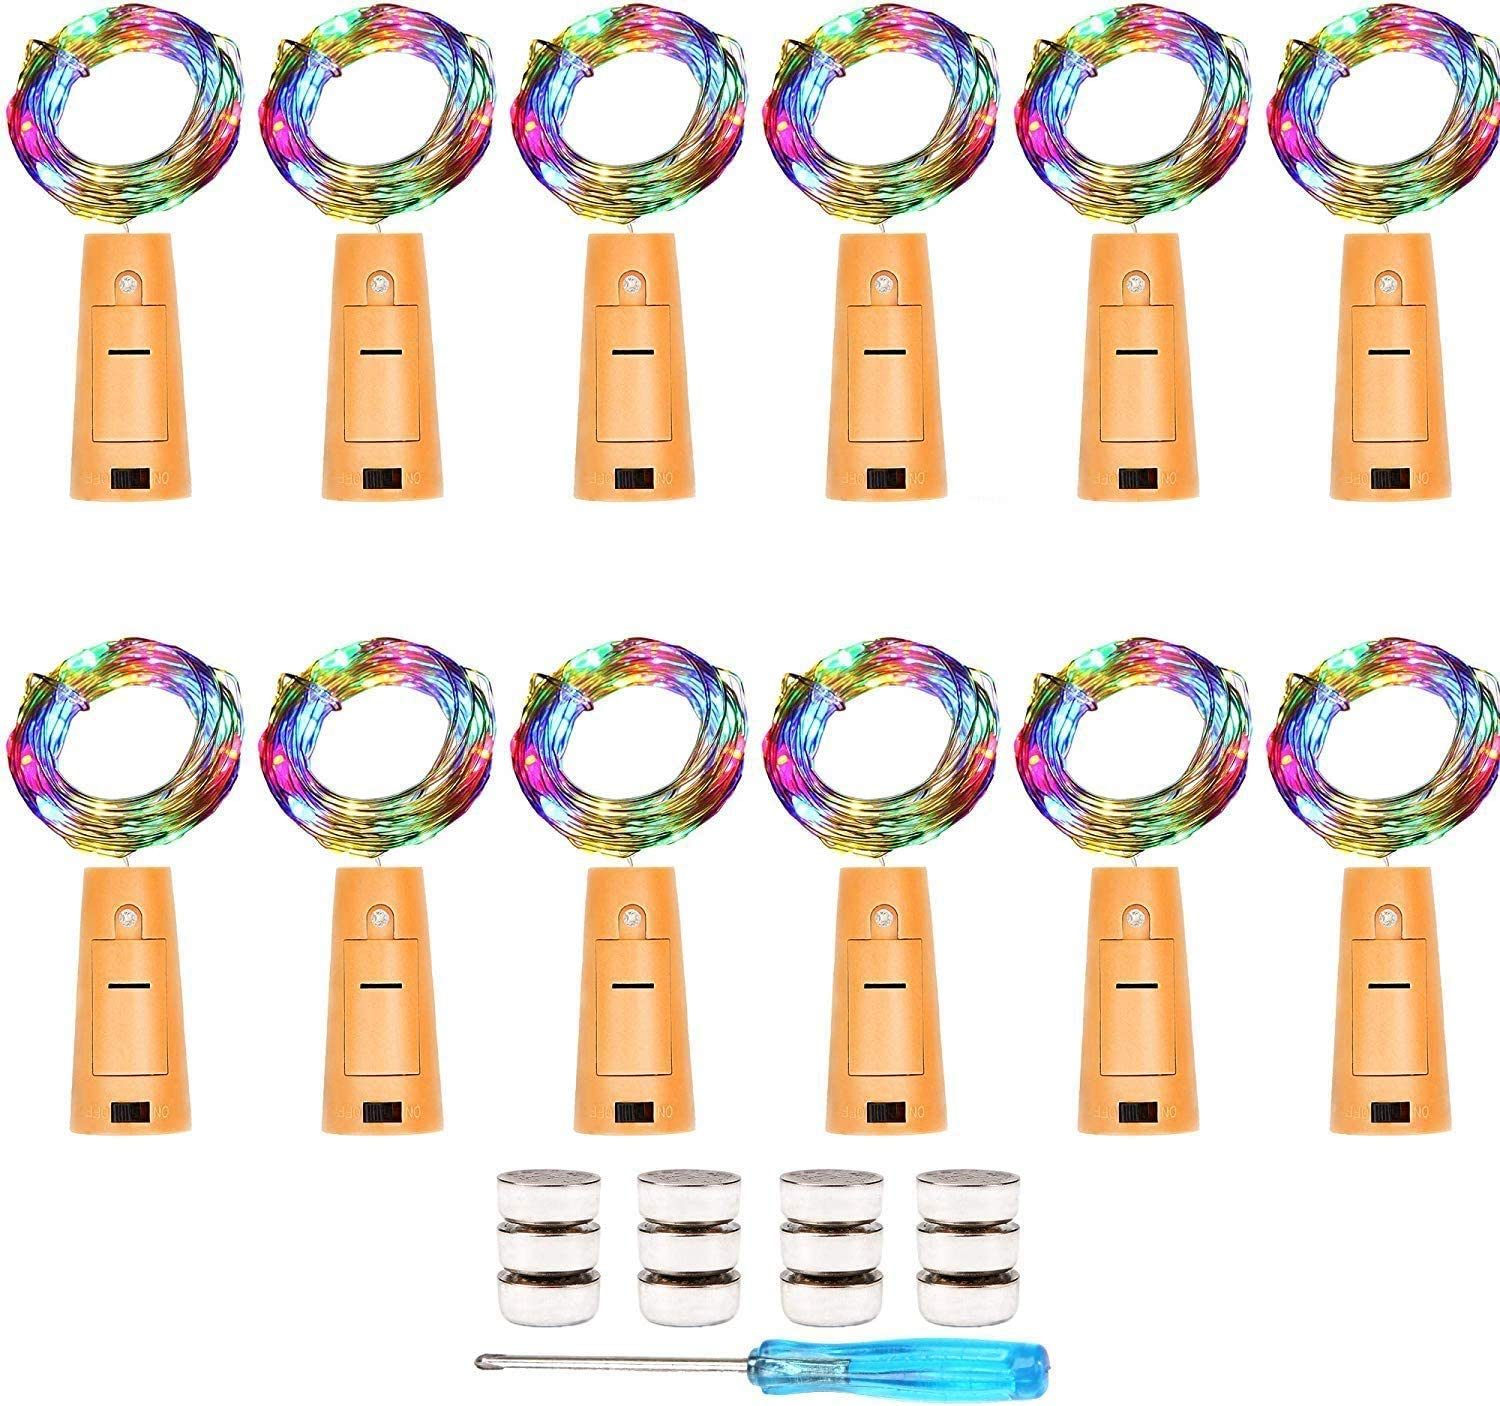 Cooo 12 Lamp Sets Wine Bottle Lights with Cork 20Led,36pre-Installed+12Spare Battery, LED Fairy Lights Battery Operated DIY Room Party Christmas Halloween Wedding Birthday Dinner Bar Decor - Colorful